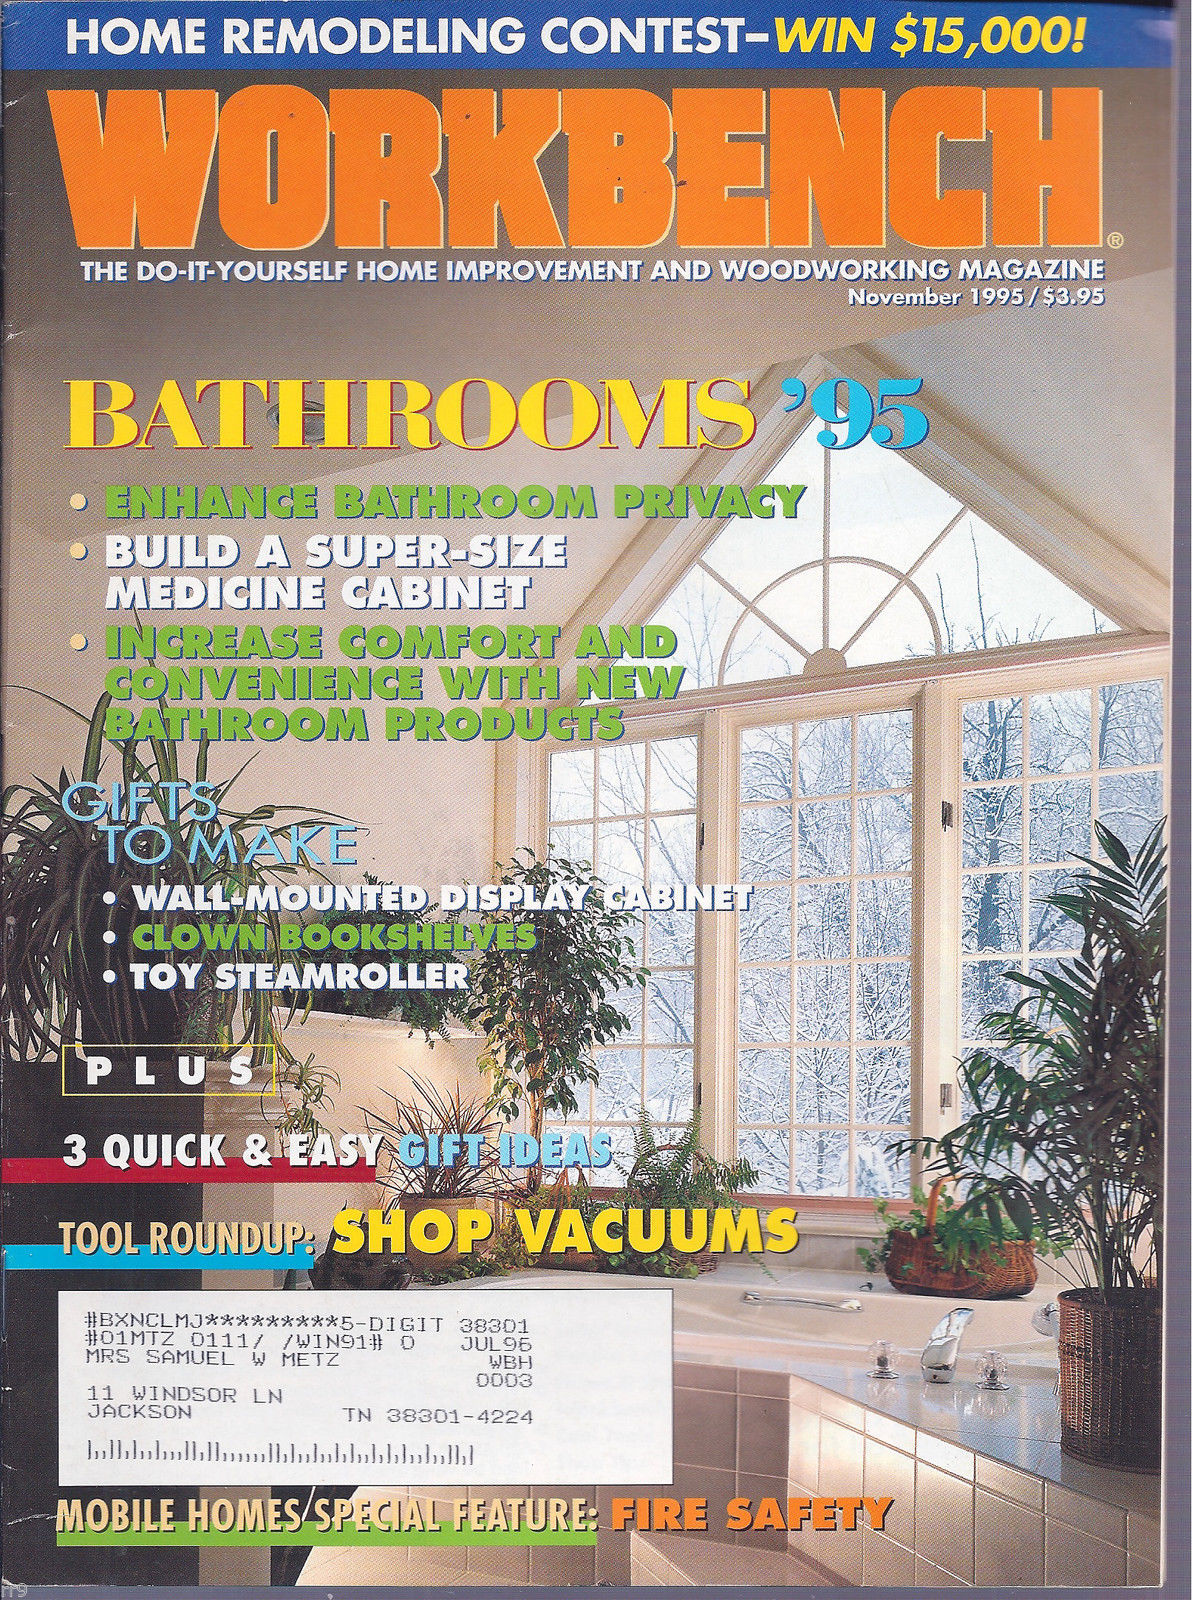 Primary image for Workbench November 1995 The Do-It-Yourself Magazine/ Bathrooms